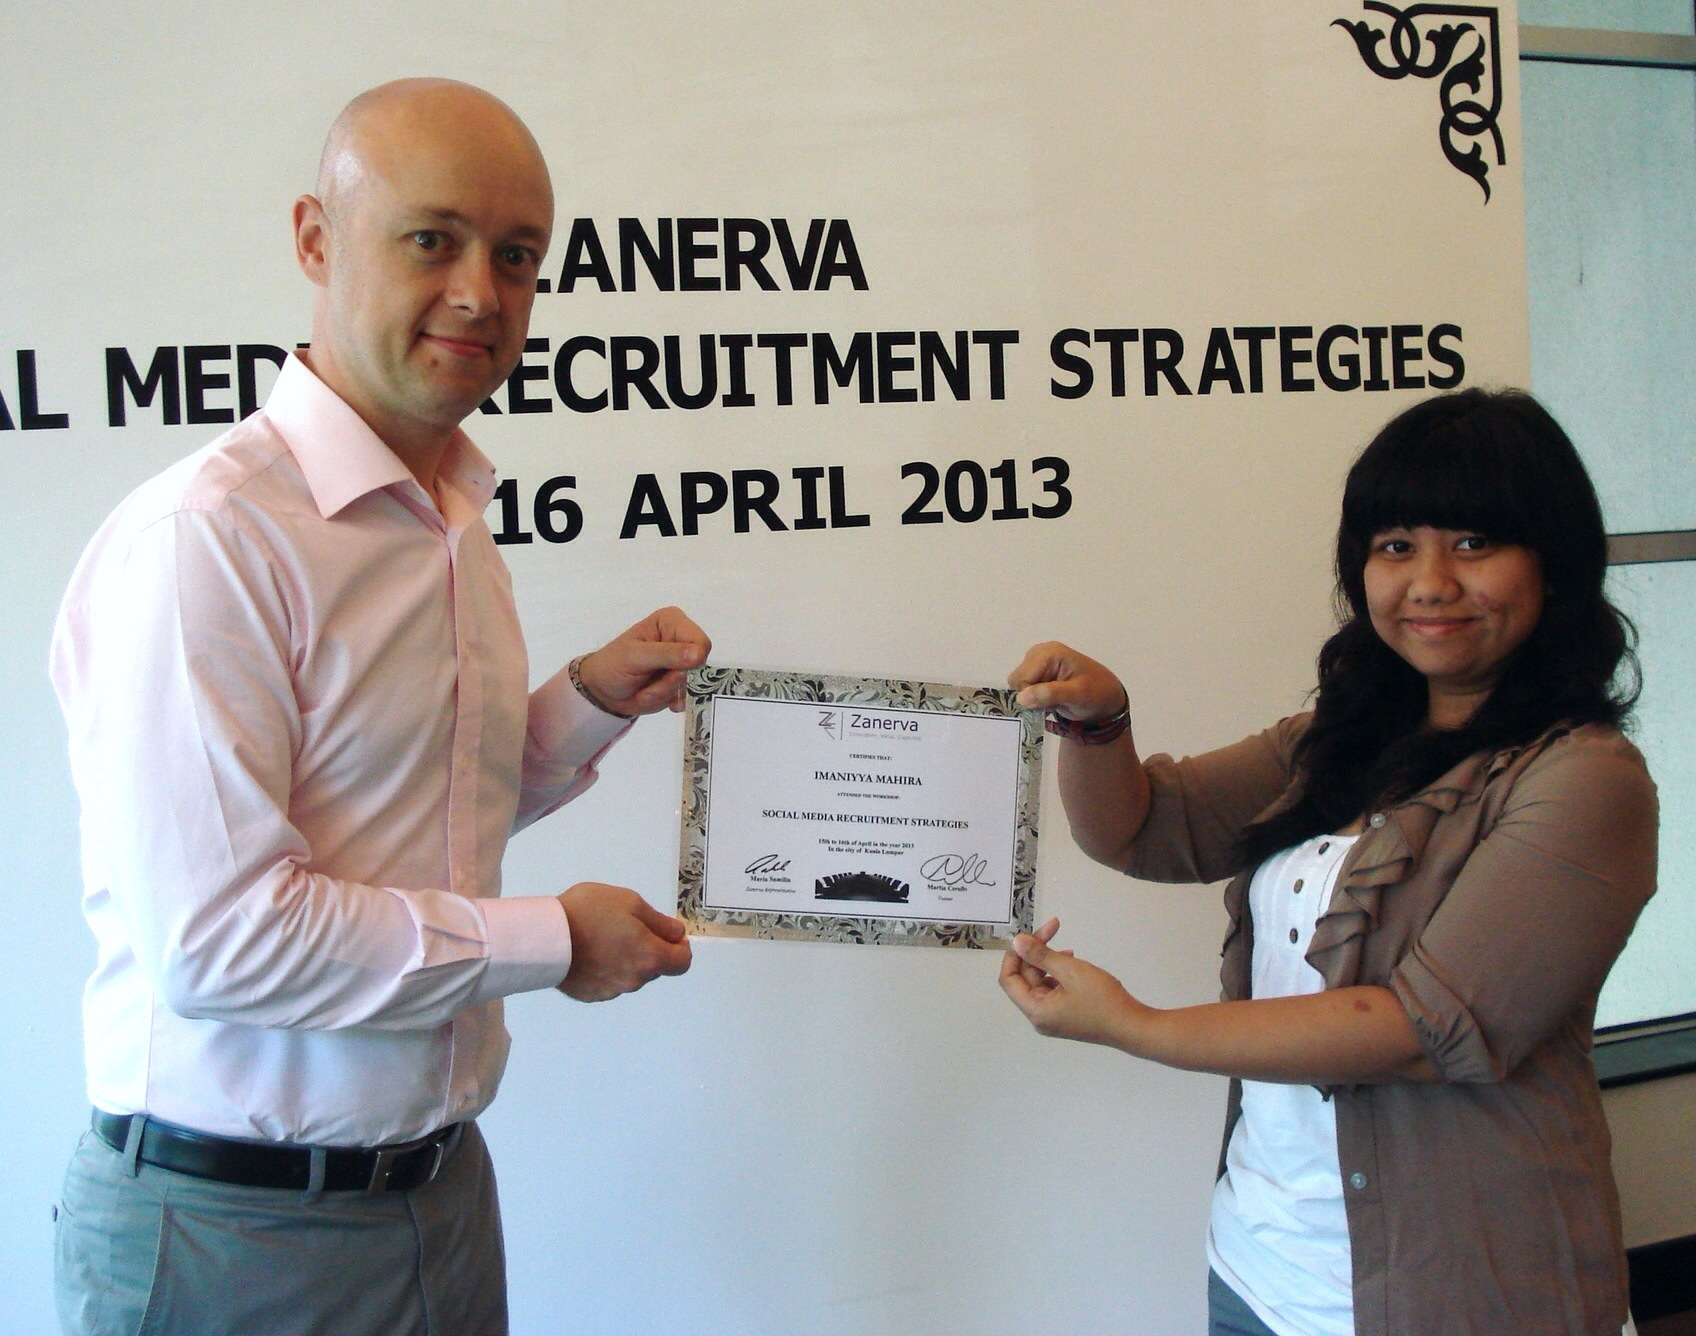 Imaniyya Mahira, Associate Resource Development Manager at Nutricia Indonesia Sejahtera  receiving her certificate of participation for attending the Social Media Recruitment Strategies Workshop in Kuala Lumpur